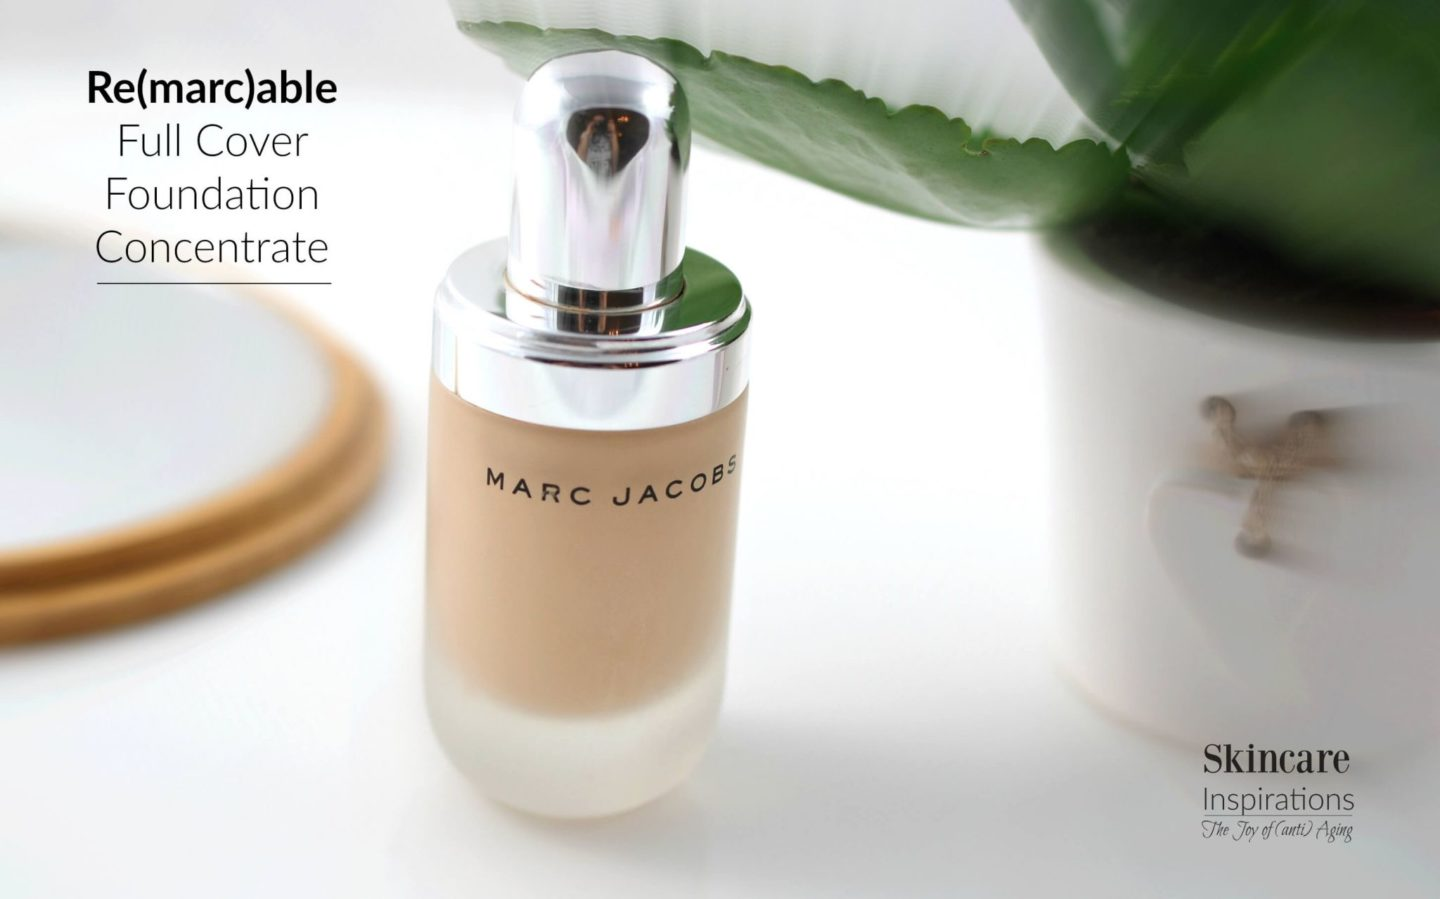 Marc Jacobs Remarcable Full Cover Foundation Concentrate Review 2